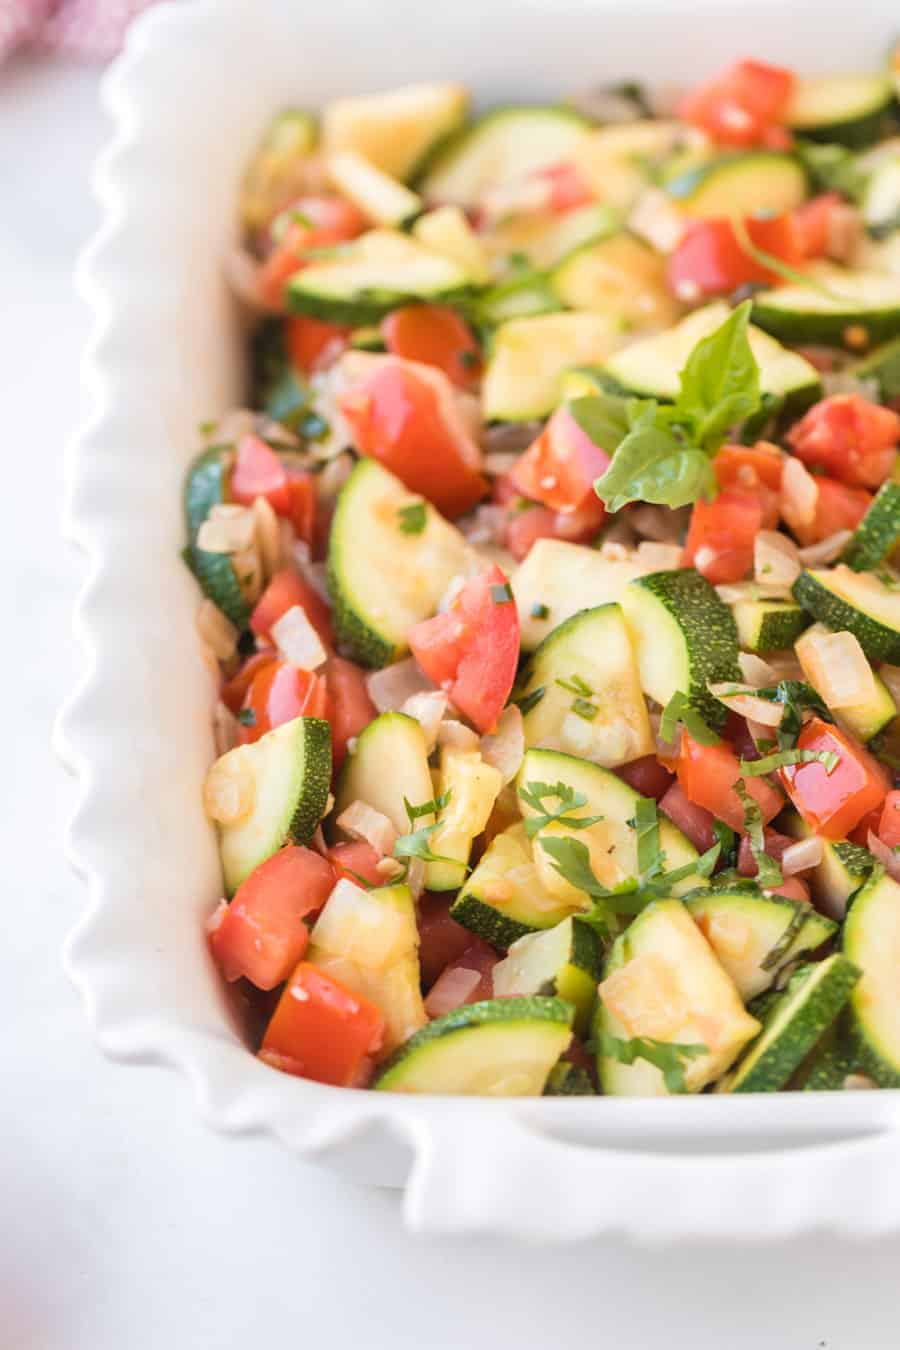 This zucchini side dish is full of onion, tomato, herbs, and of course zucchini to make a bright and fresh side that tastes out-of-this-world delicious! #zucchini #zucchiniside #easyzucchinirecipe #zucchinimedley